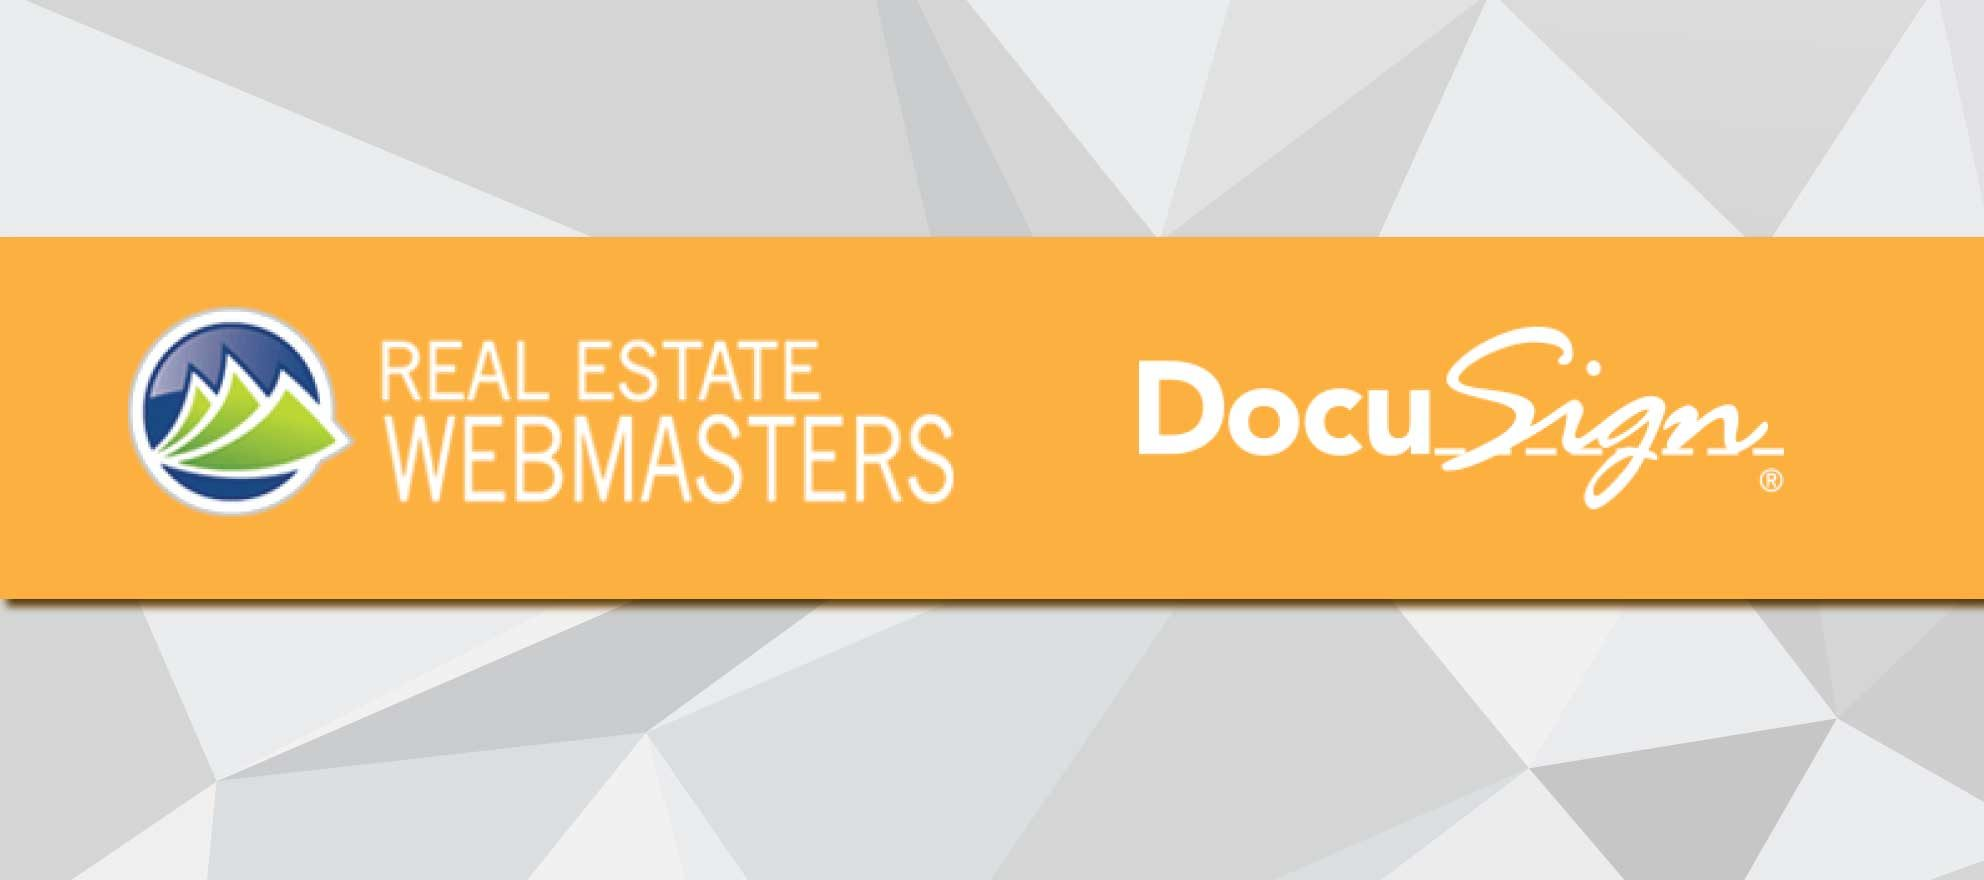 DocuSign provides deep integration with real estate website vendor